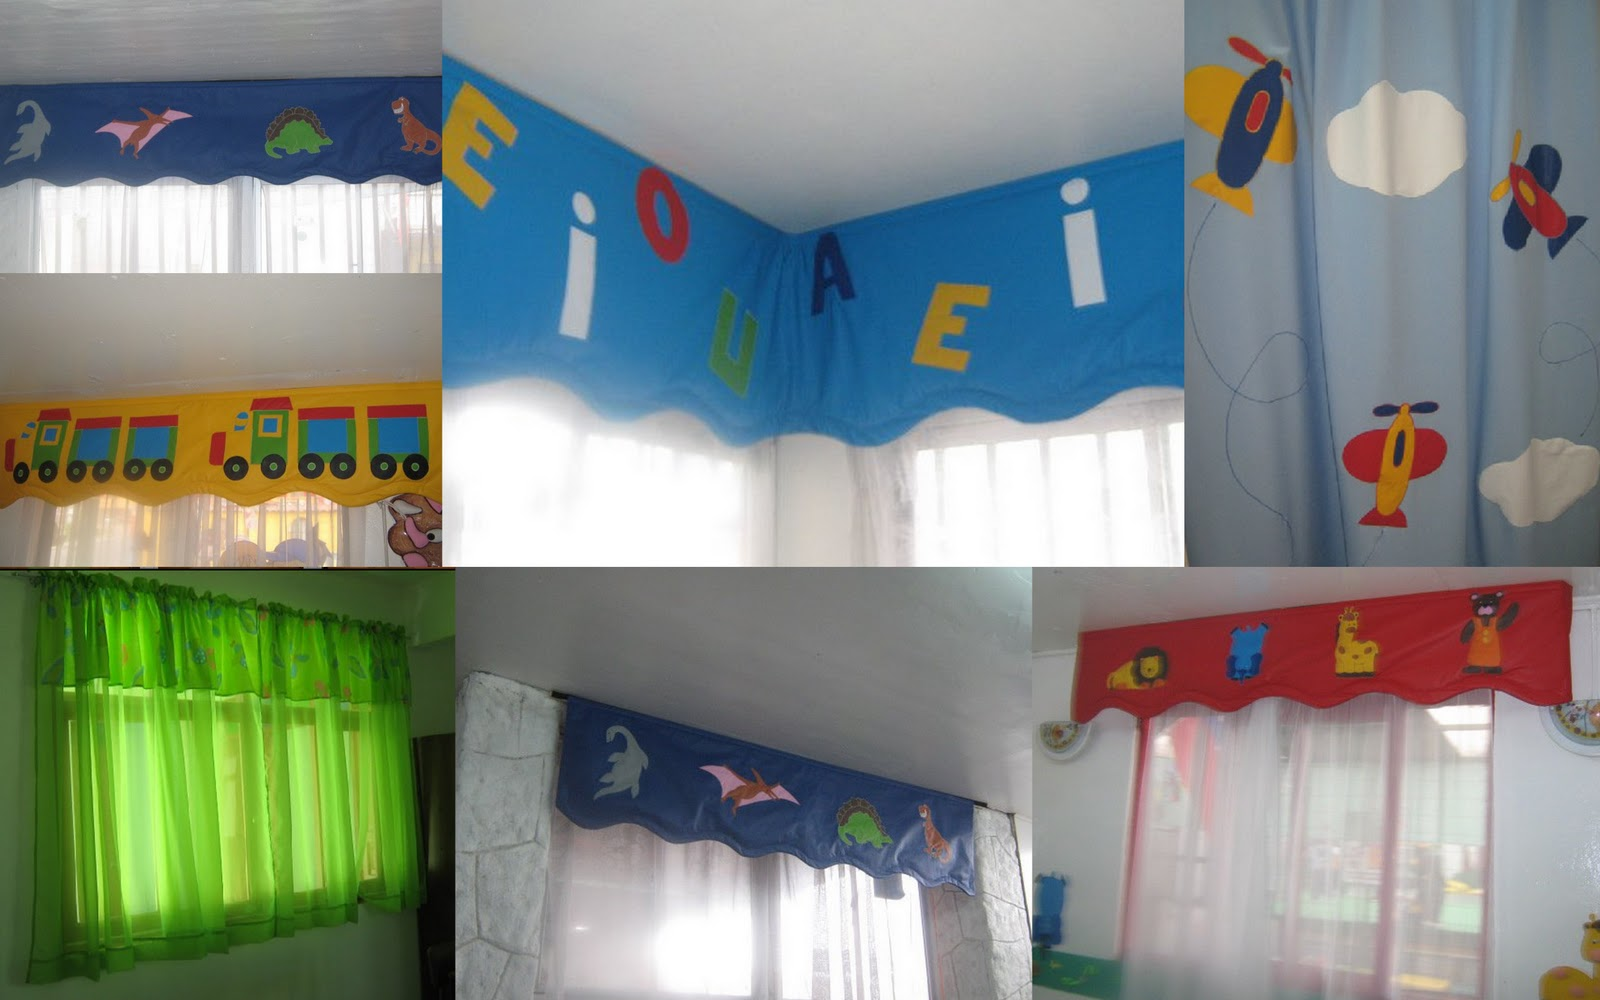 Decoracion jardin infantil for Decoracion salas jardin de infantes